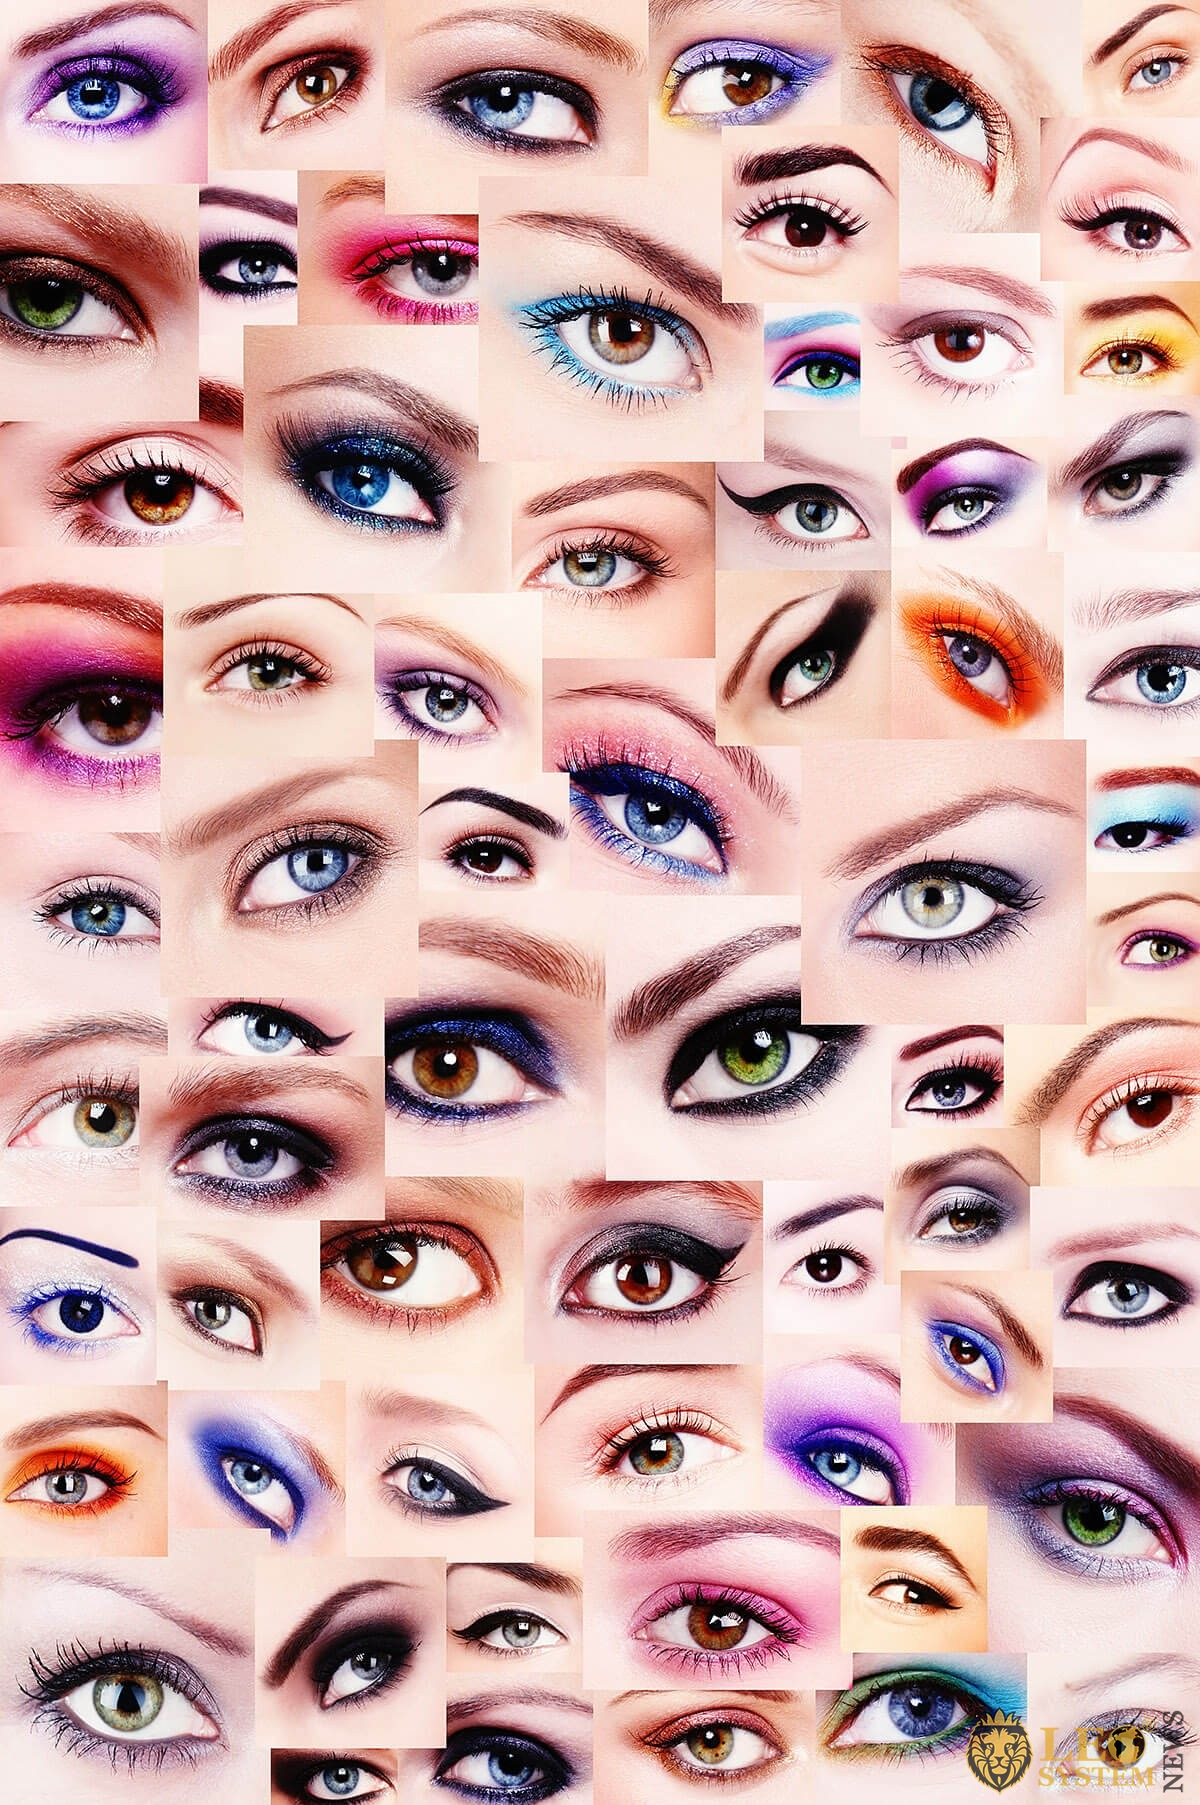 Collage of photos with different eyelash makeup options